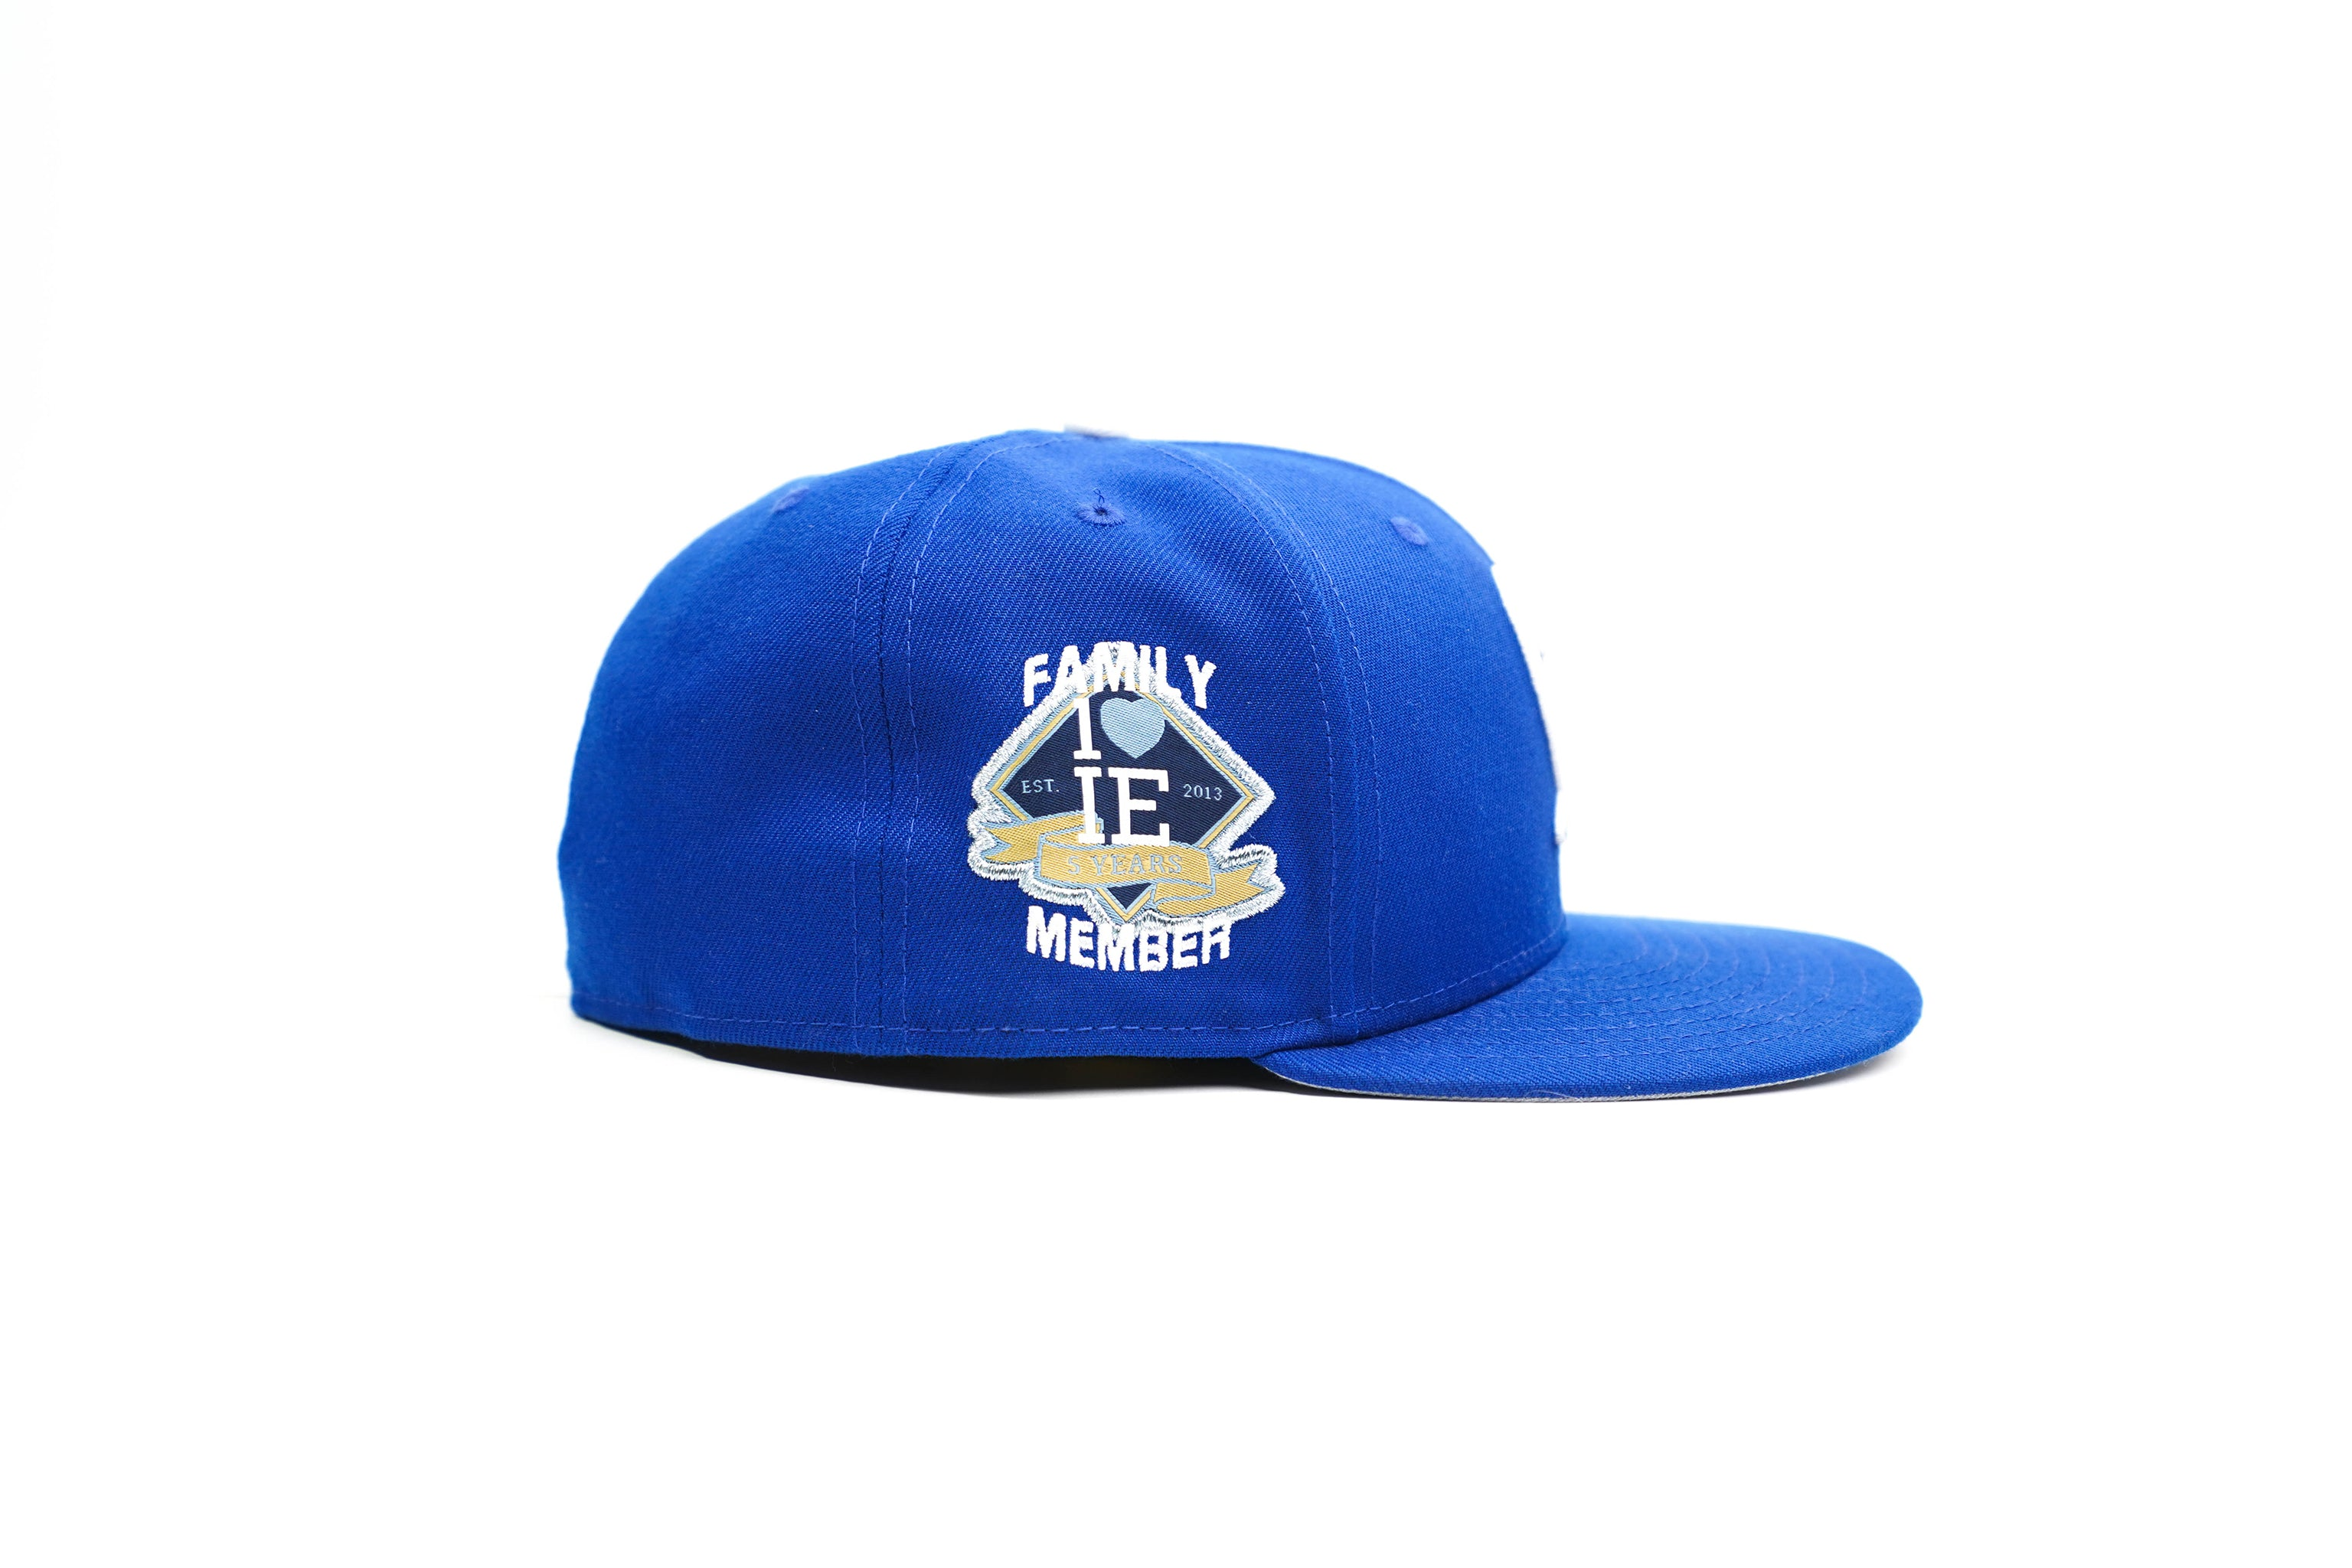 Limited Royal & White 1LoveIE New Era 59FIFTY Fitted Cap